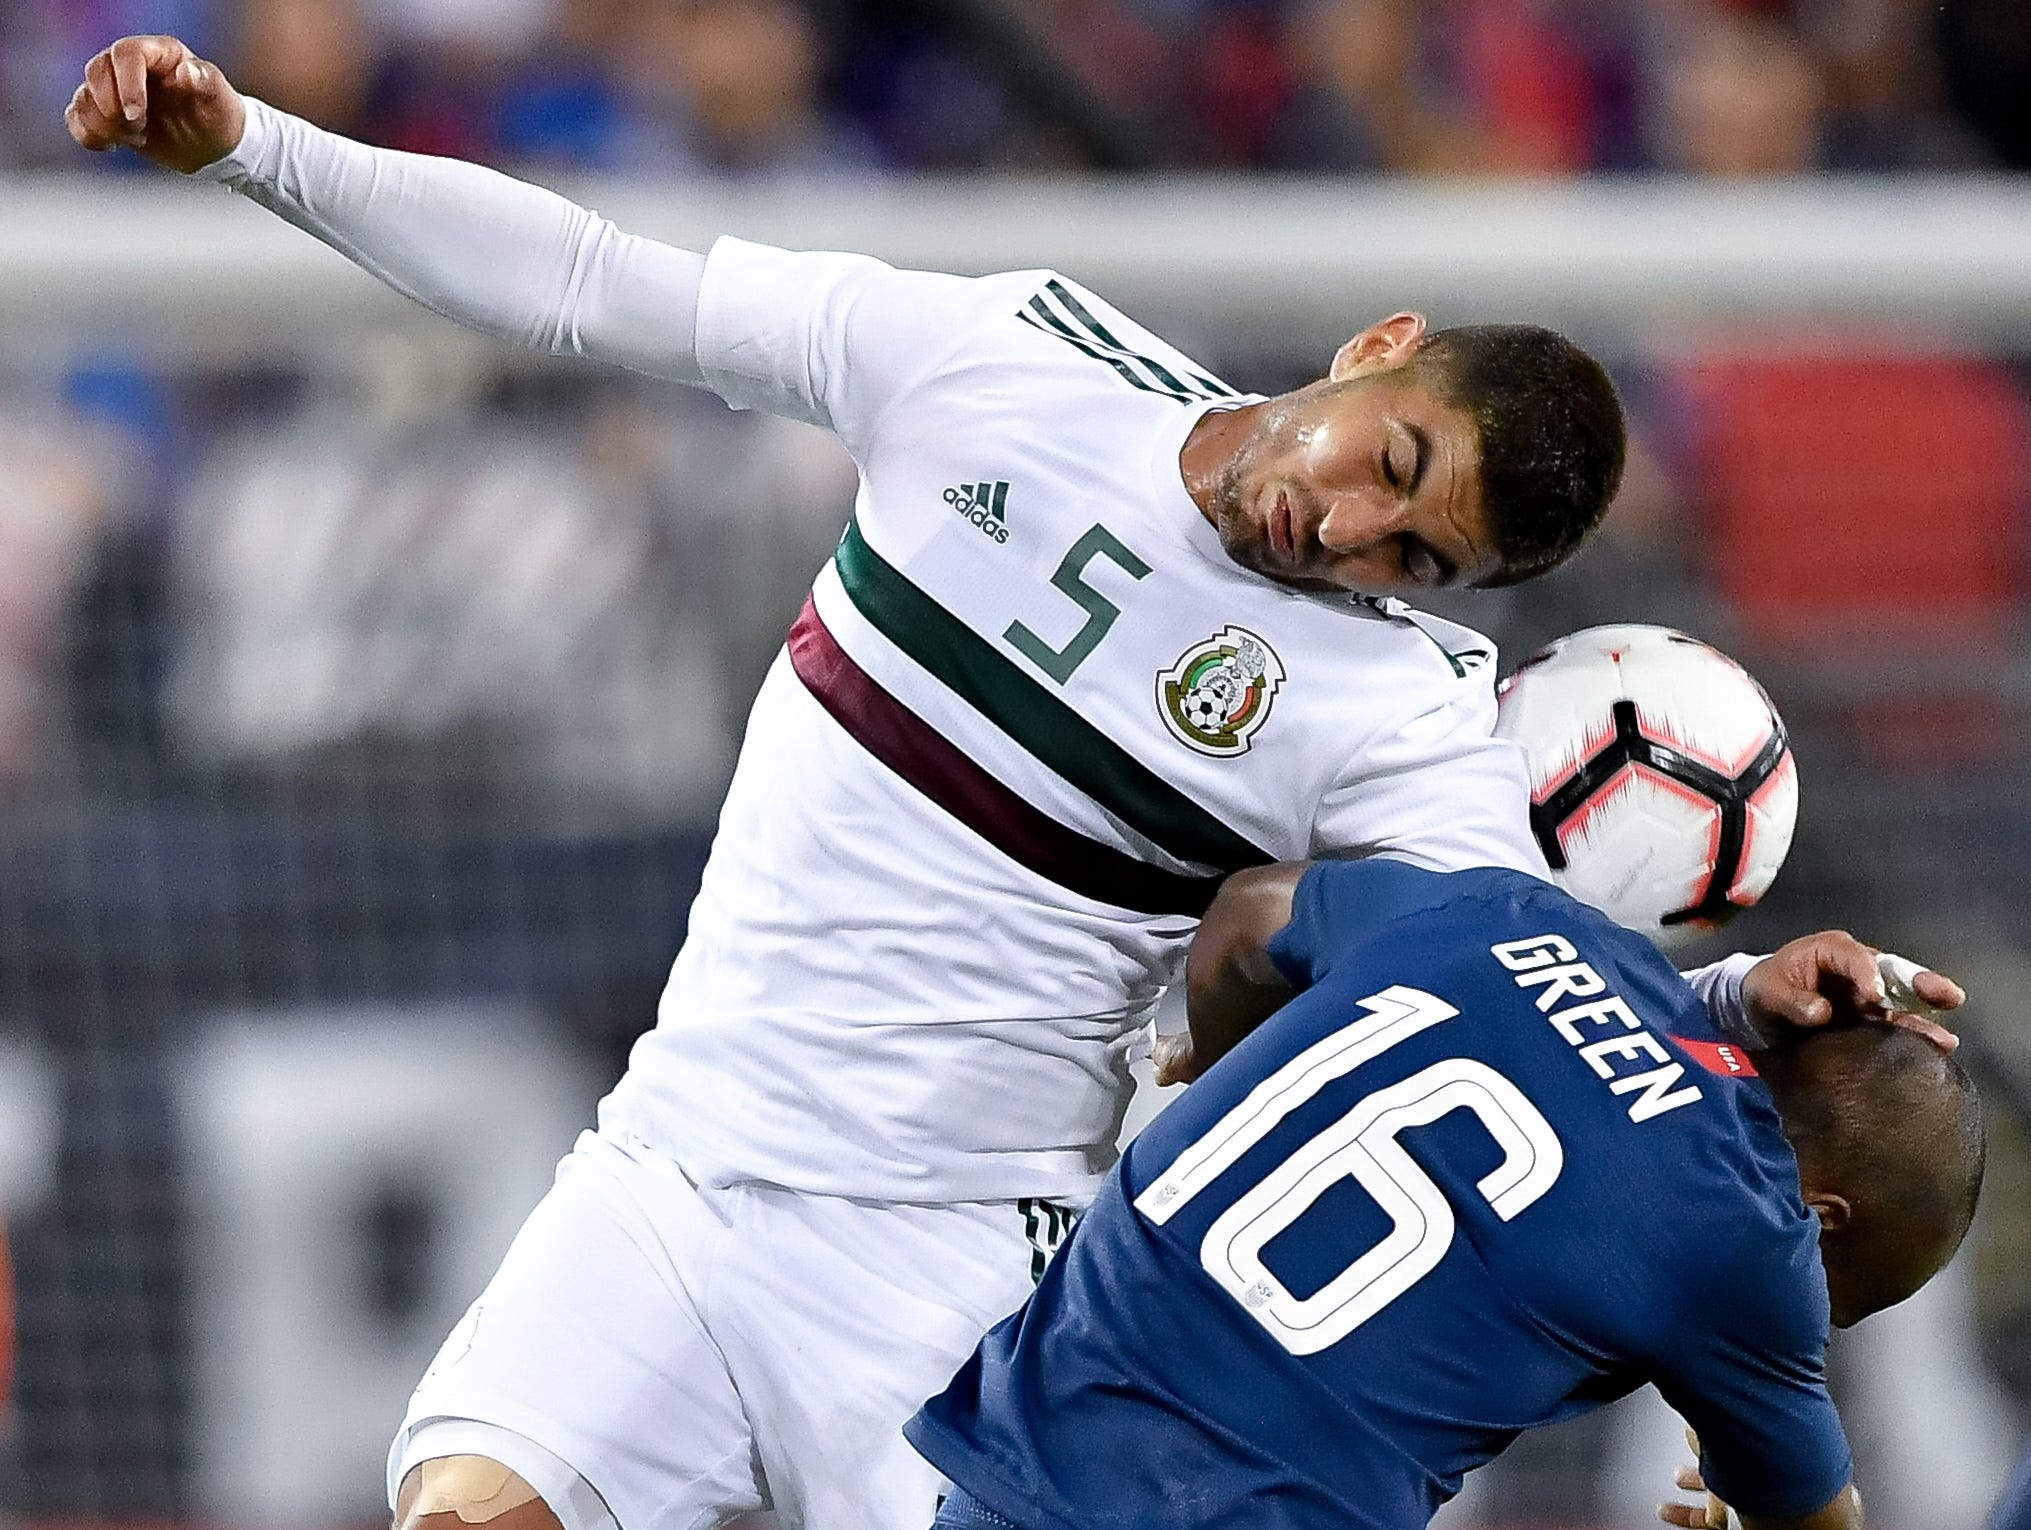 Mexico midfielder Victor Guzman (5) battles for the ball with USA midfielder Julian Green (16) during the first half at Nissan Stadium in Nashville, Tenn., Tuesday, Sept. 11, 2018.